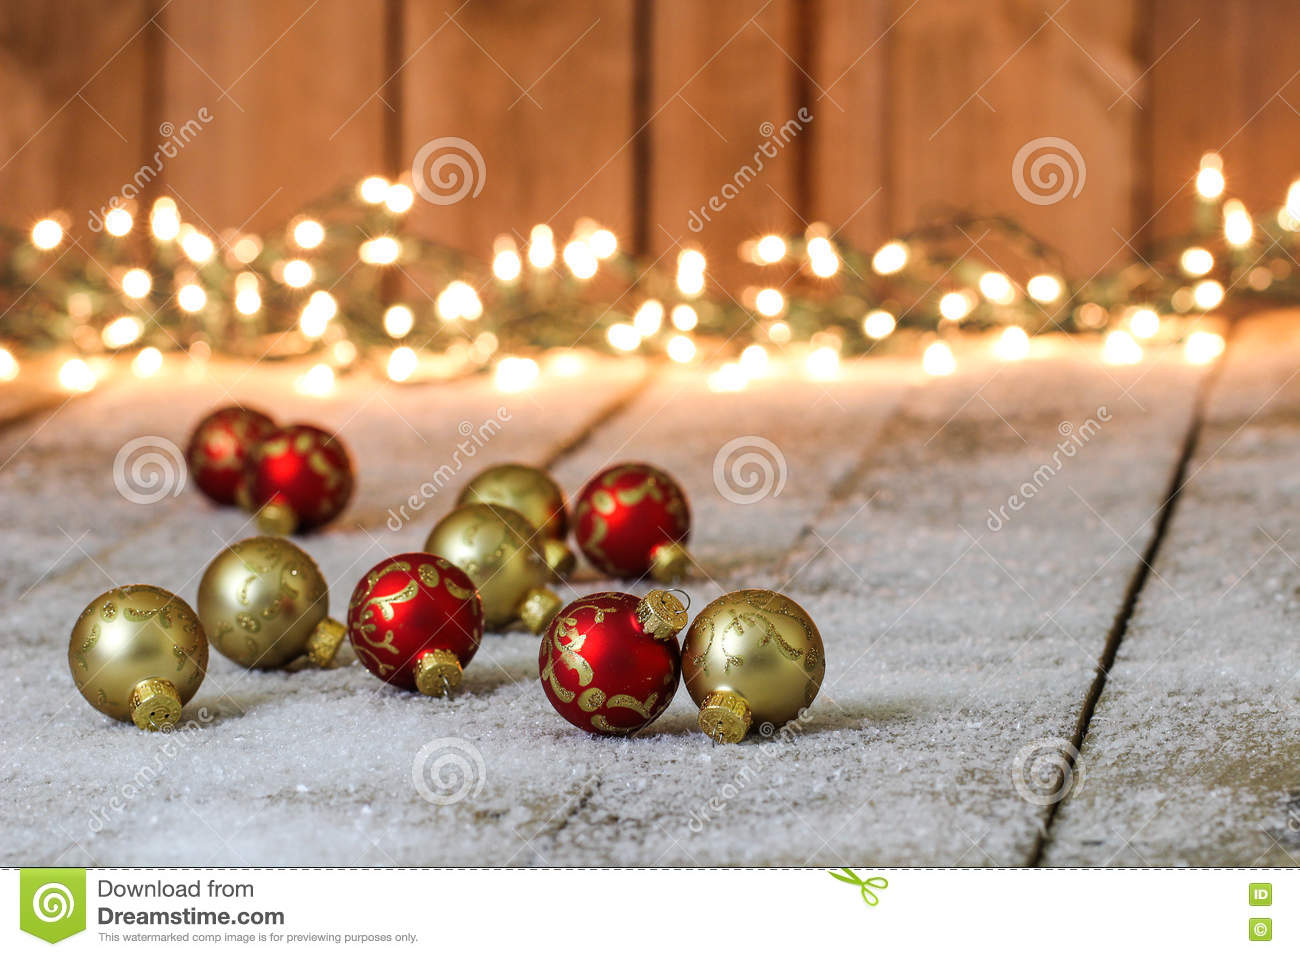 red gold christmas ornaments snowy background holiday snow covered rustic wood lights 77971019